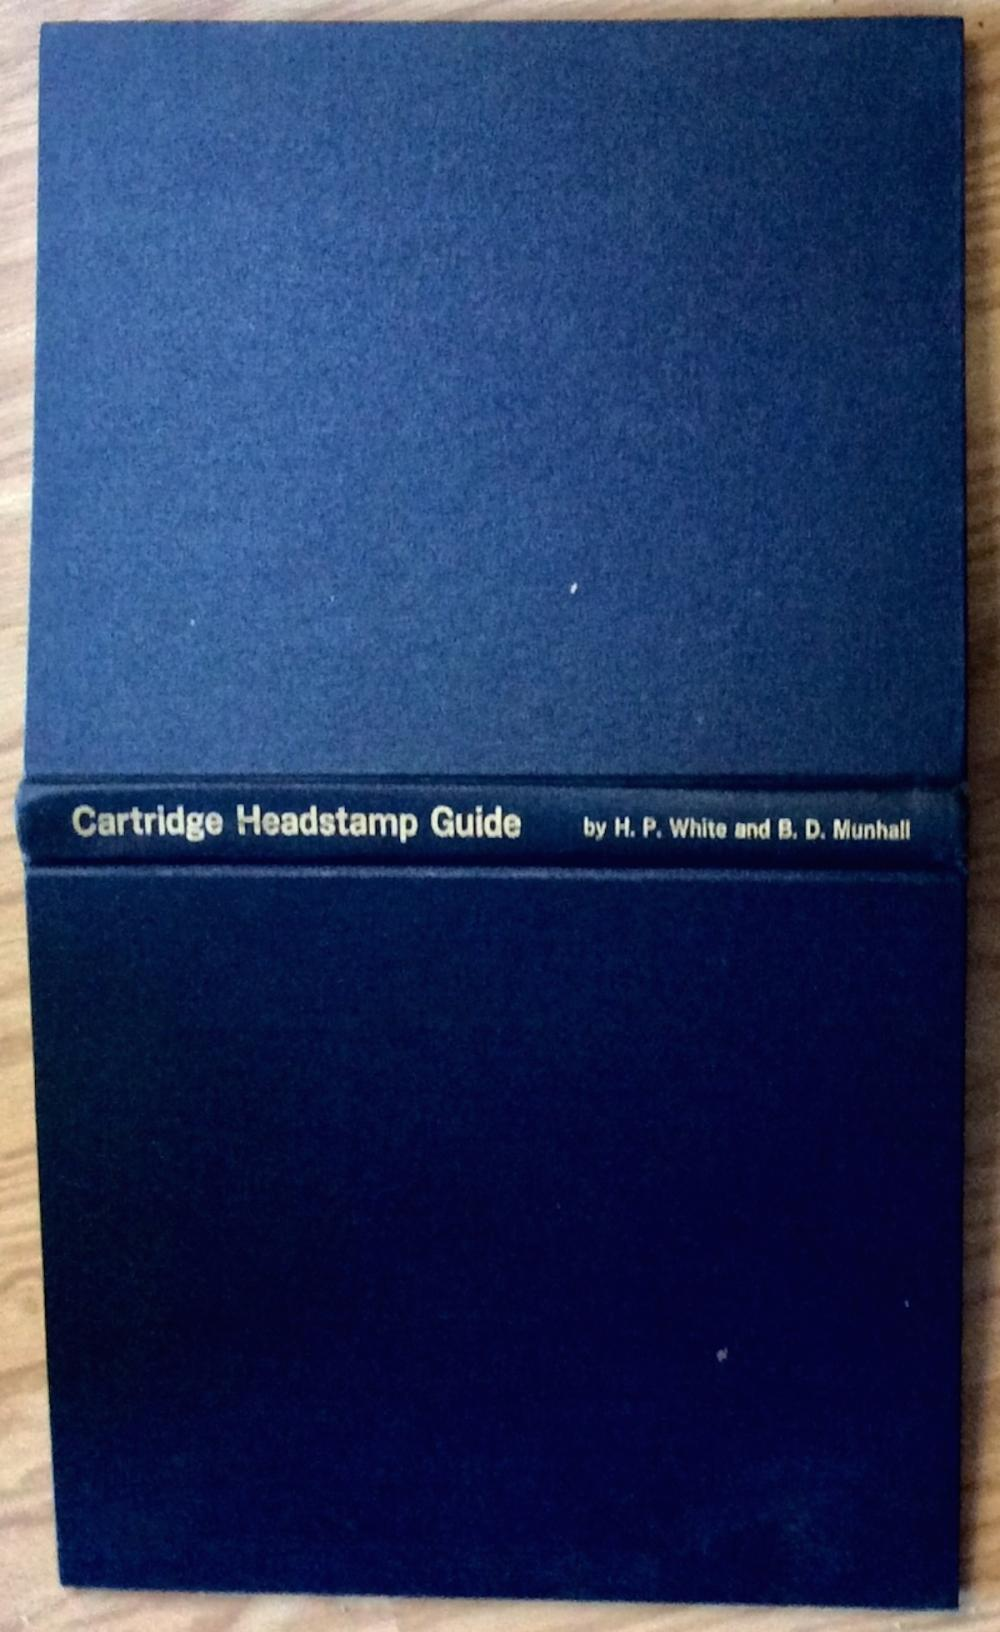 """Cartridge Headstamp Guide"" by Henry White & Burton Munhall SCARCE VINTAGE 1963 Hardcover Gun Ammunition Reference 1st Edition 1st Printing"